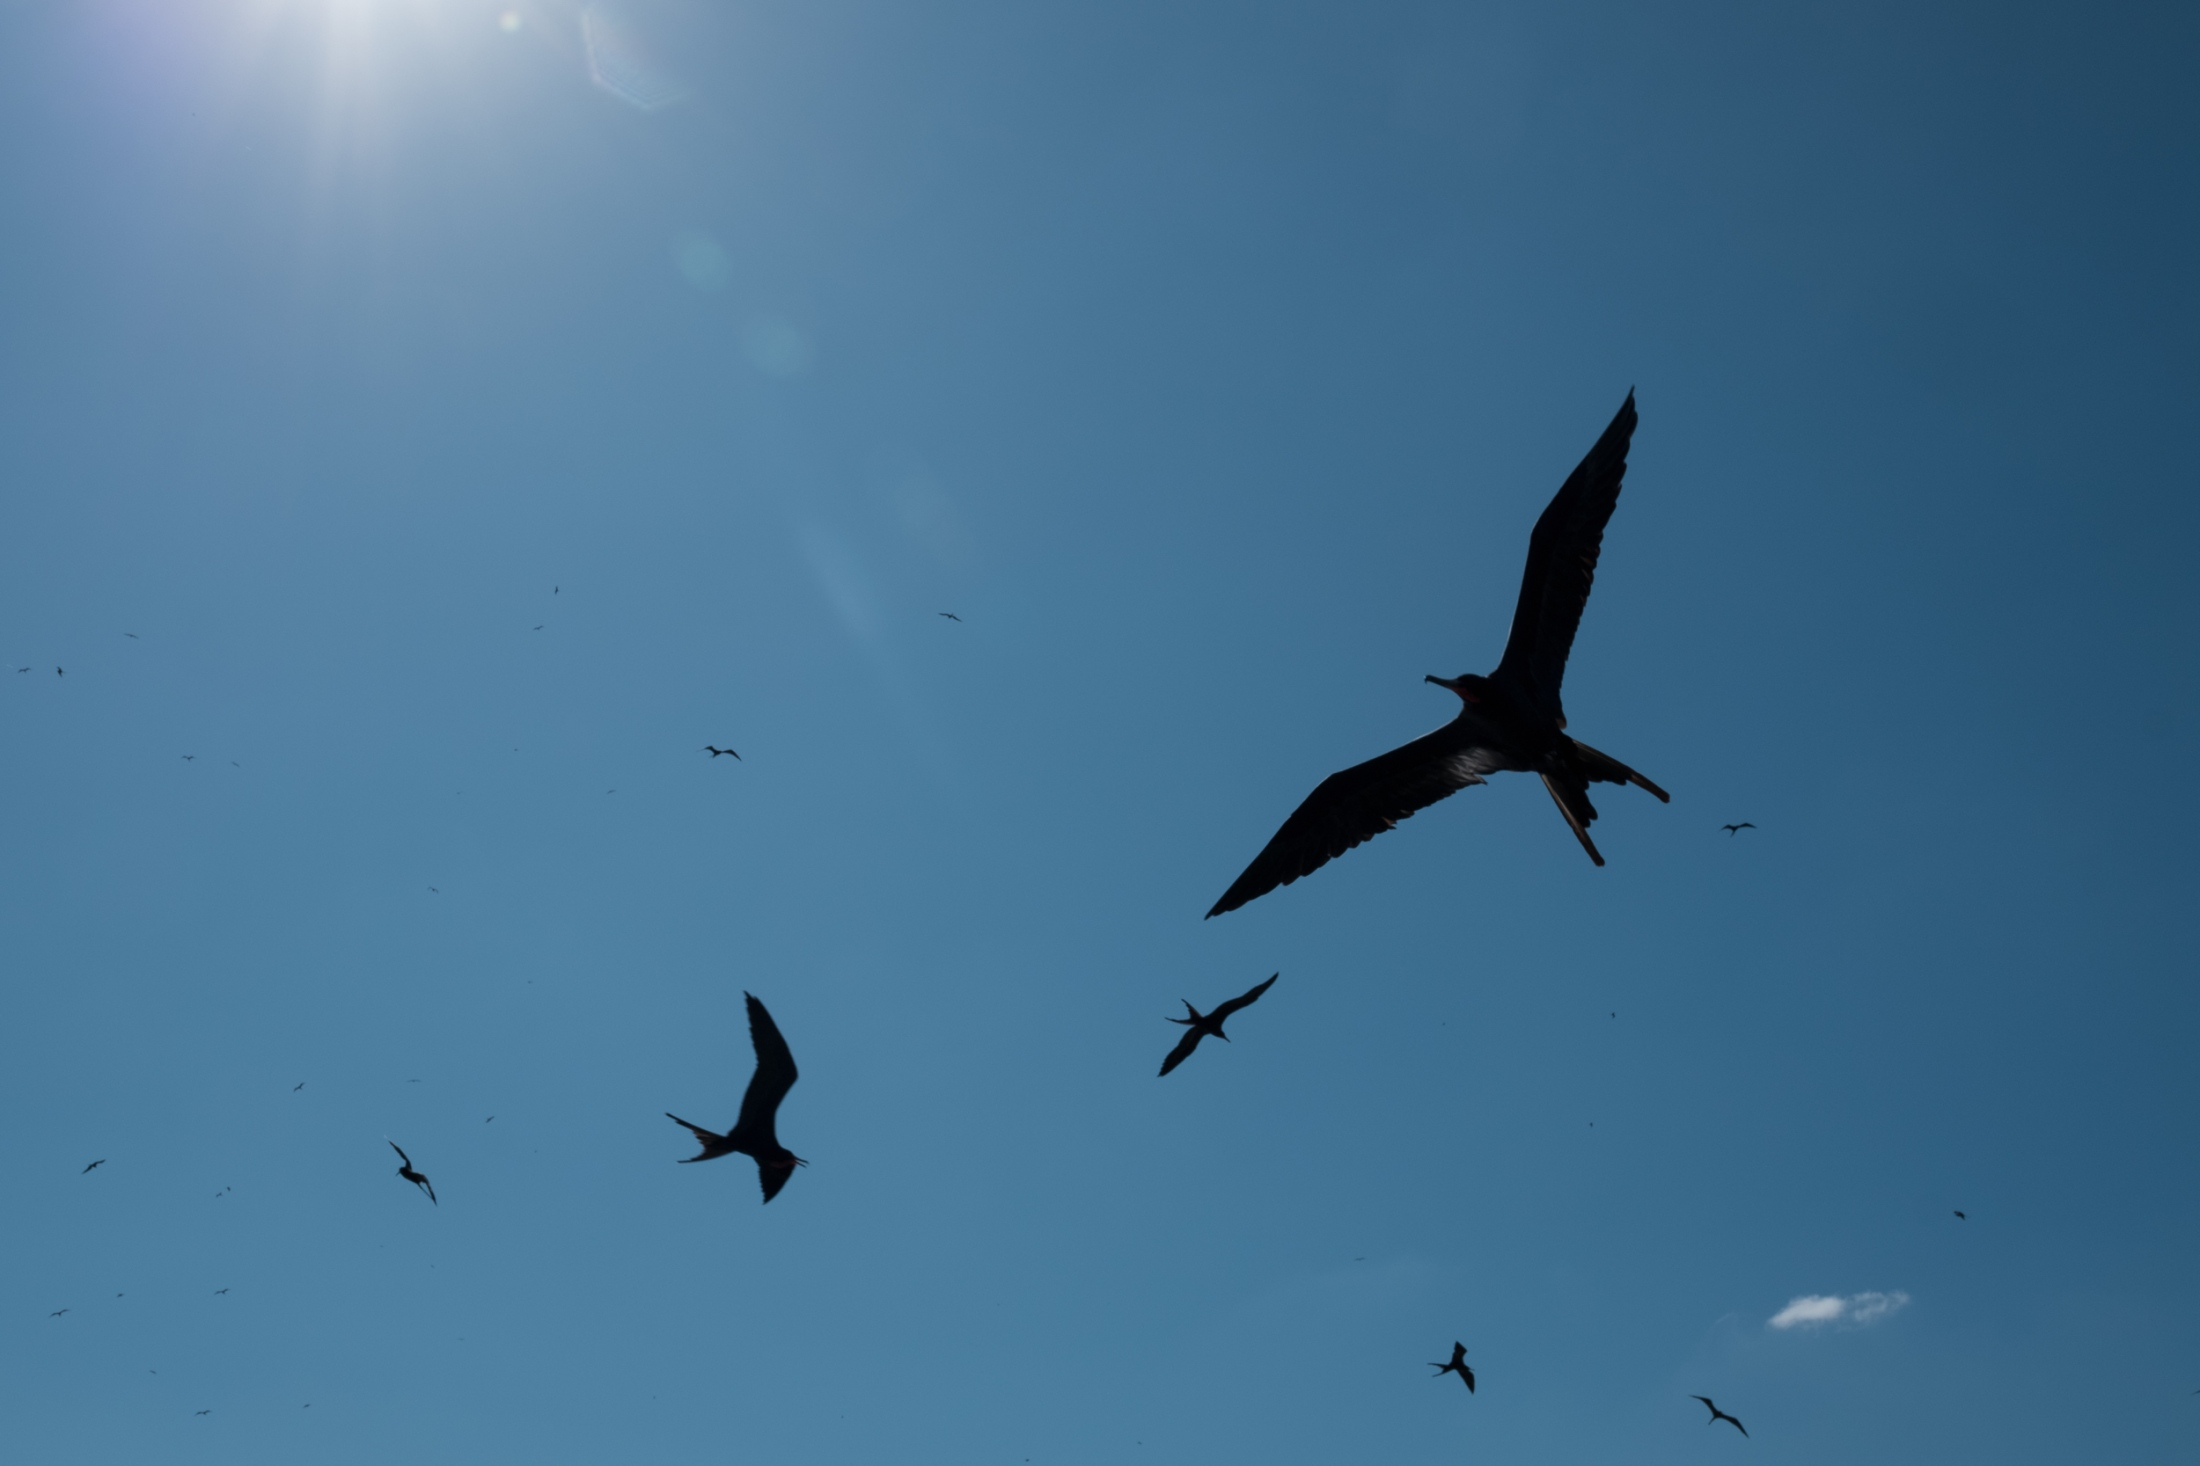 Cormorants constantly circle overhead for any fish scraps in the polluted waters.